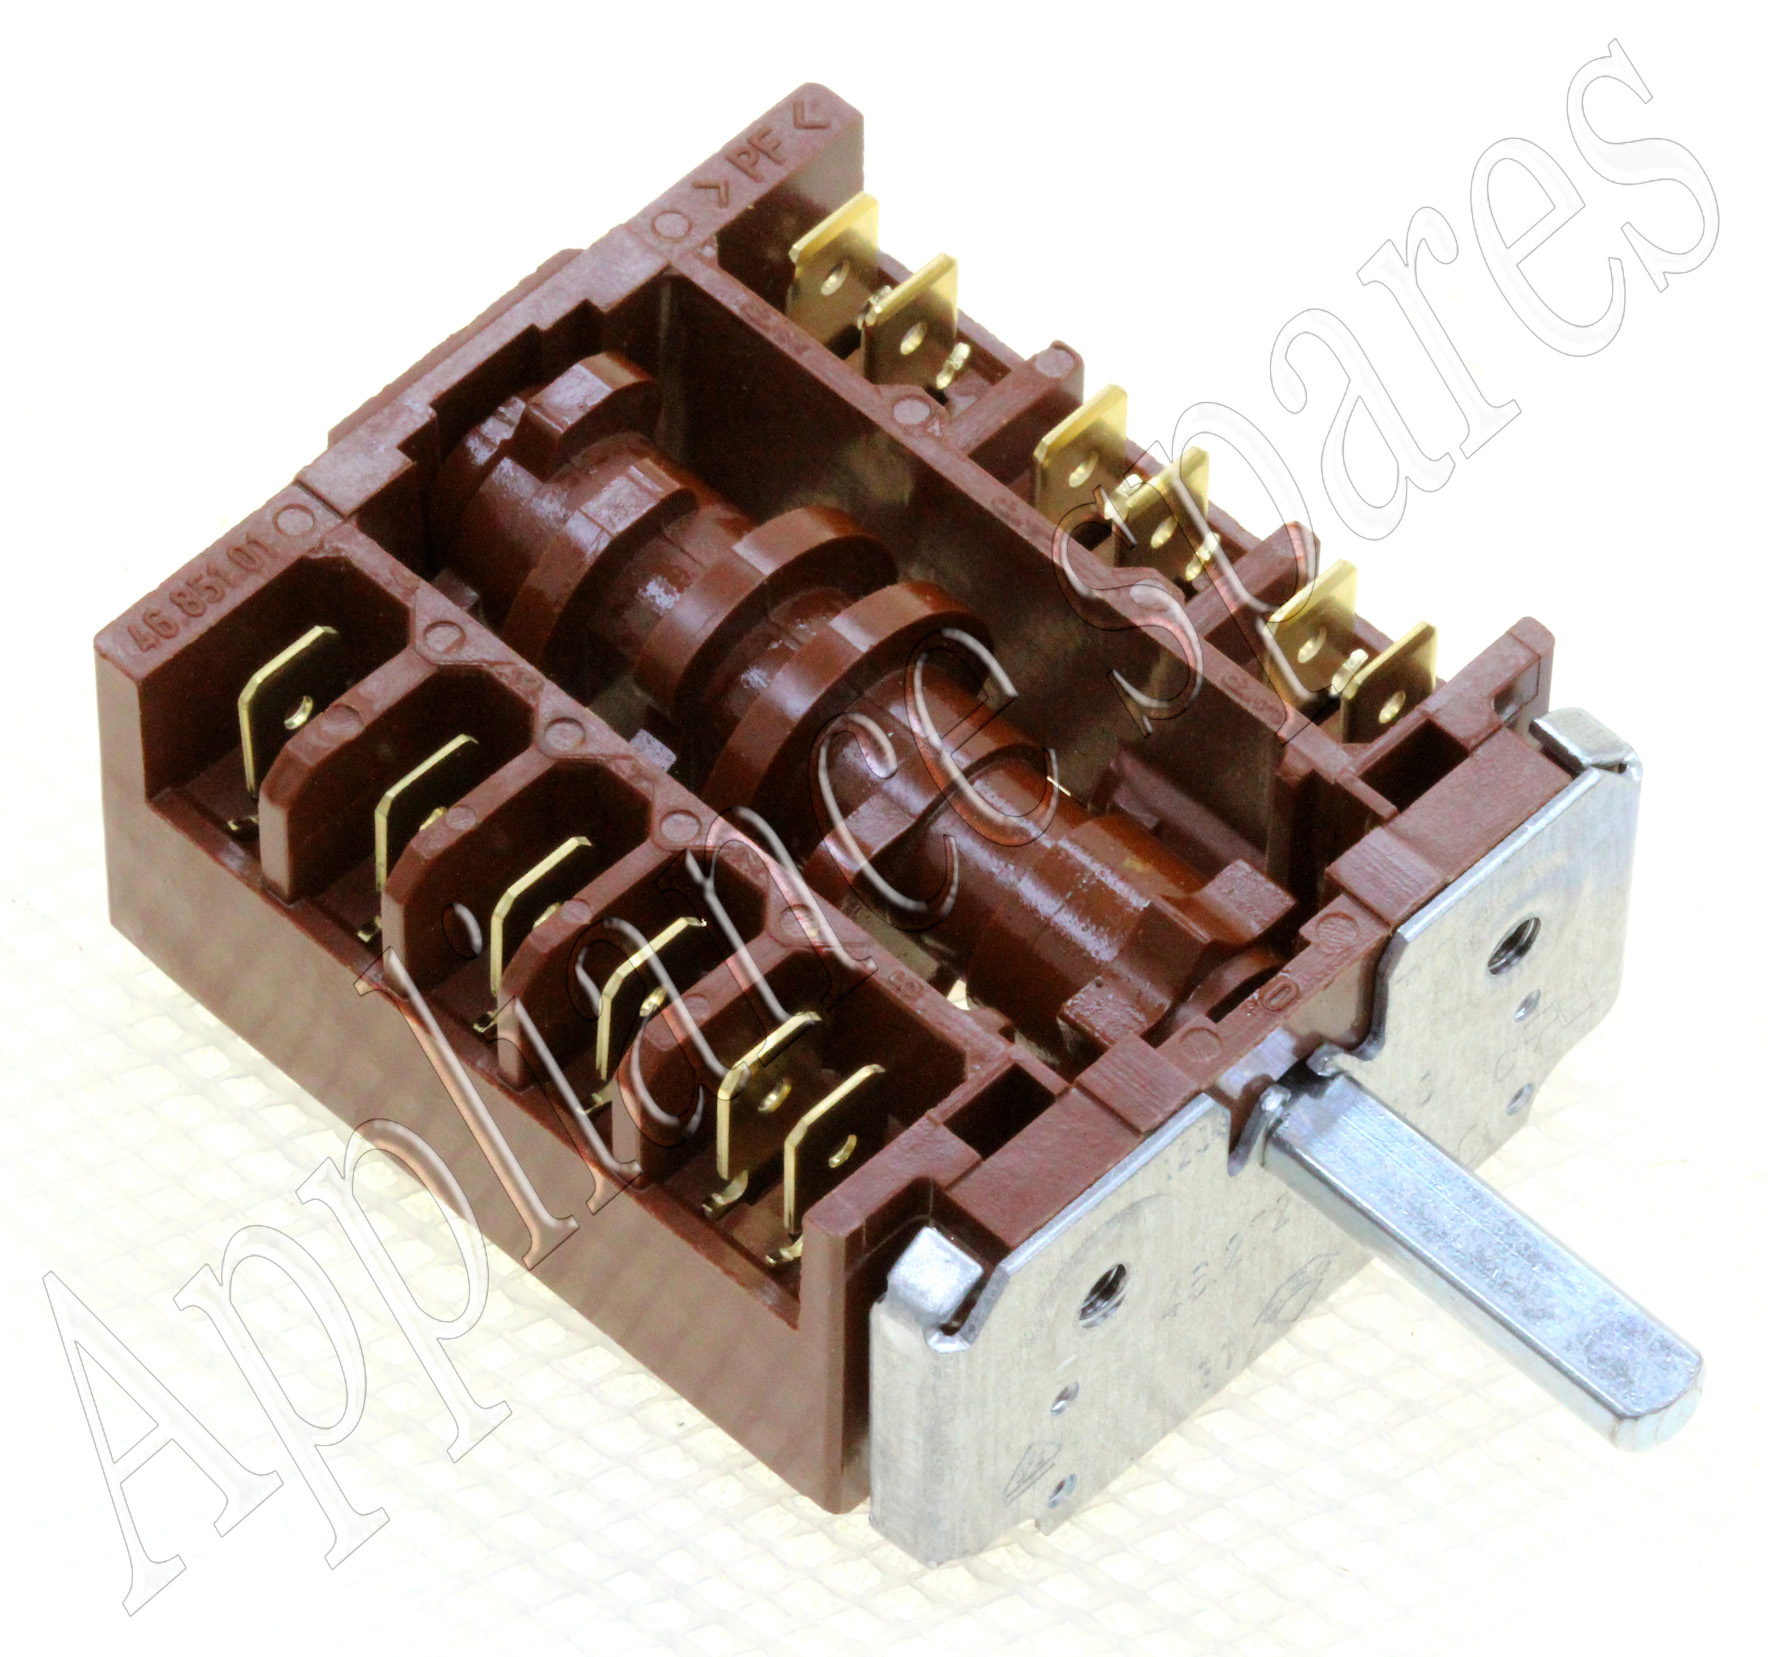 Rotary Switch Position Ha additionally Htb Nsrcfvxxxxasxvxxq Xxfxxxw moreover Ibanezpicku iring Zpsfb B F moreover Htb Unh Gfxxxxcbxpxxq Xxfxxxd likewise Keysw. on 6 position rotary switch wiring diagram